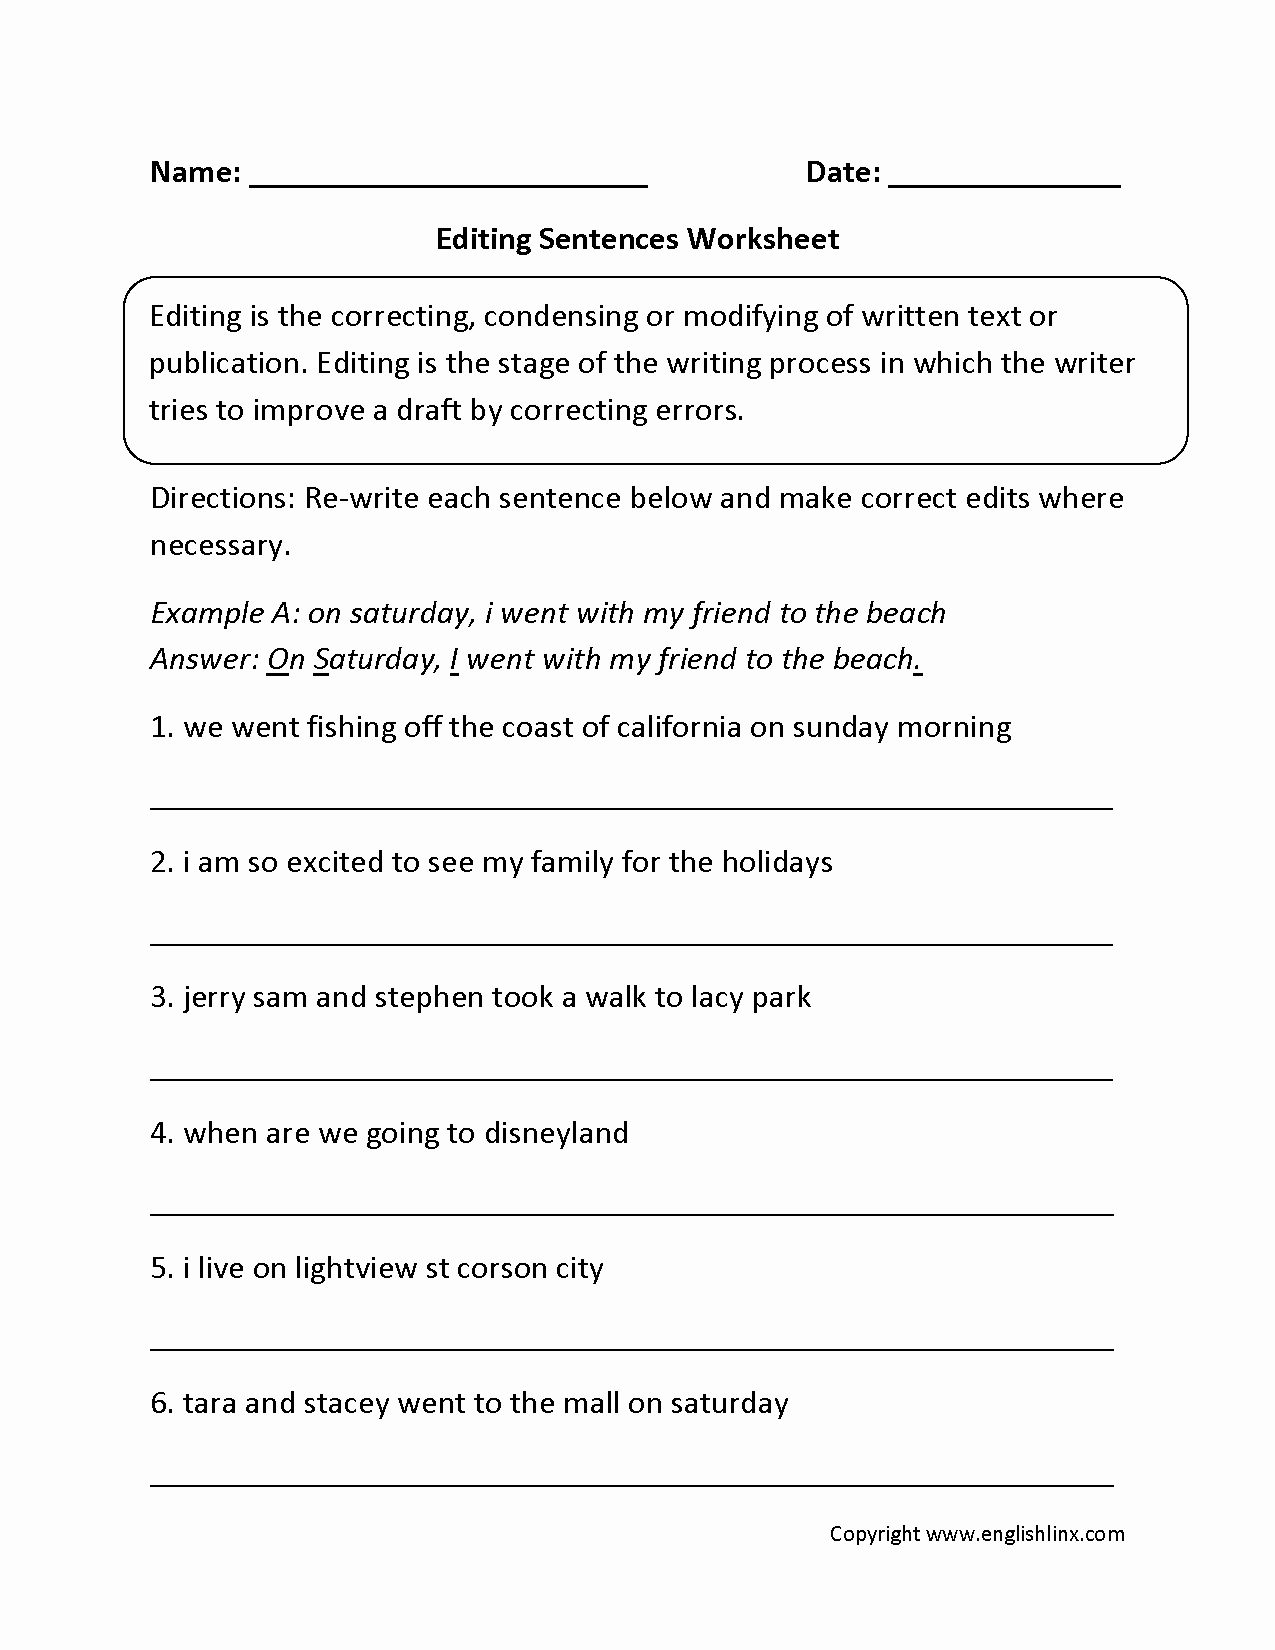 Editing and Proofreading Worksheets Fresh Grammar Editing Worksheets Grade 6 Diy Worksheet